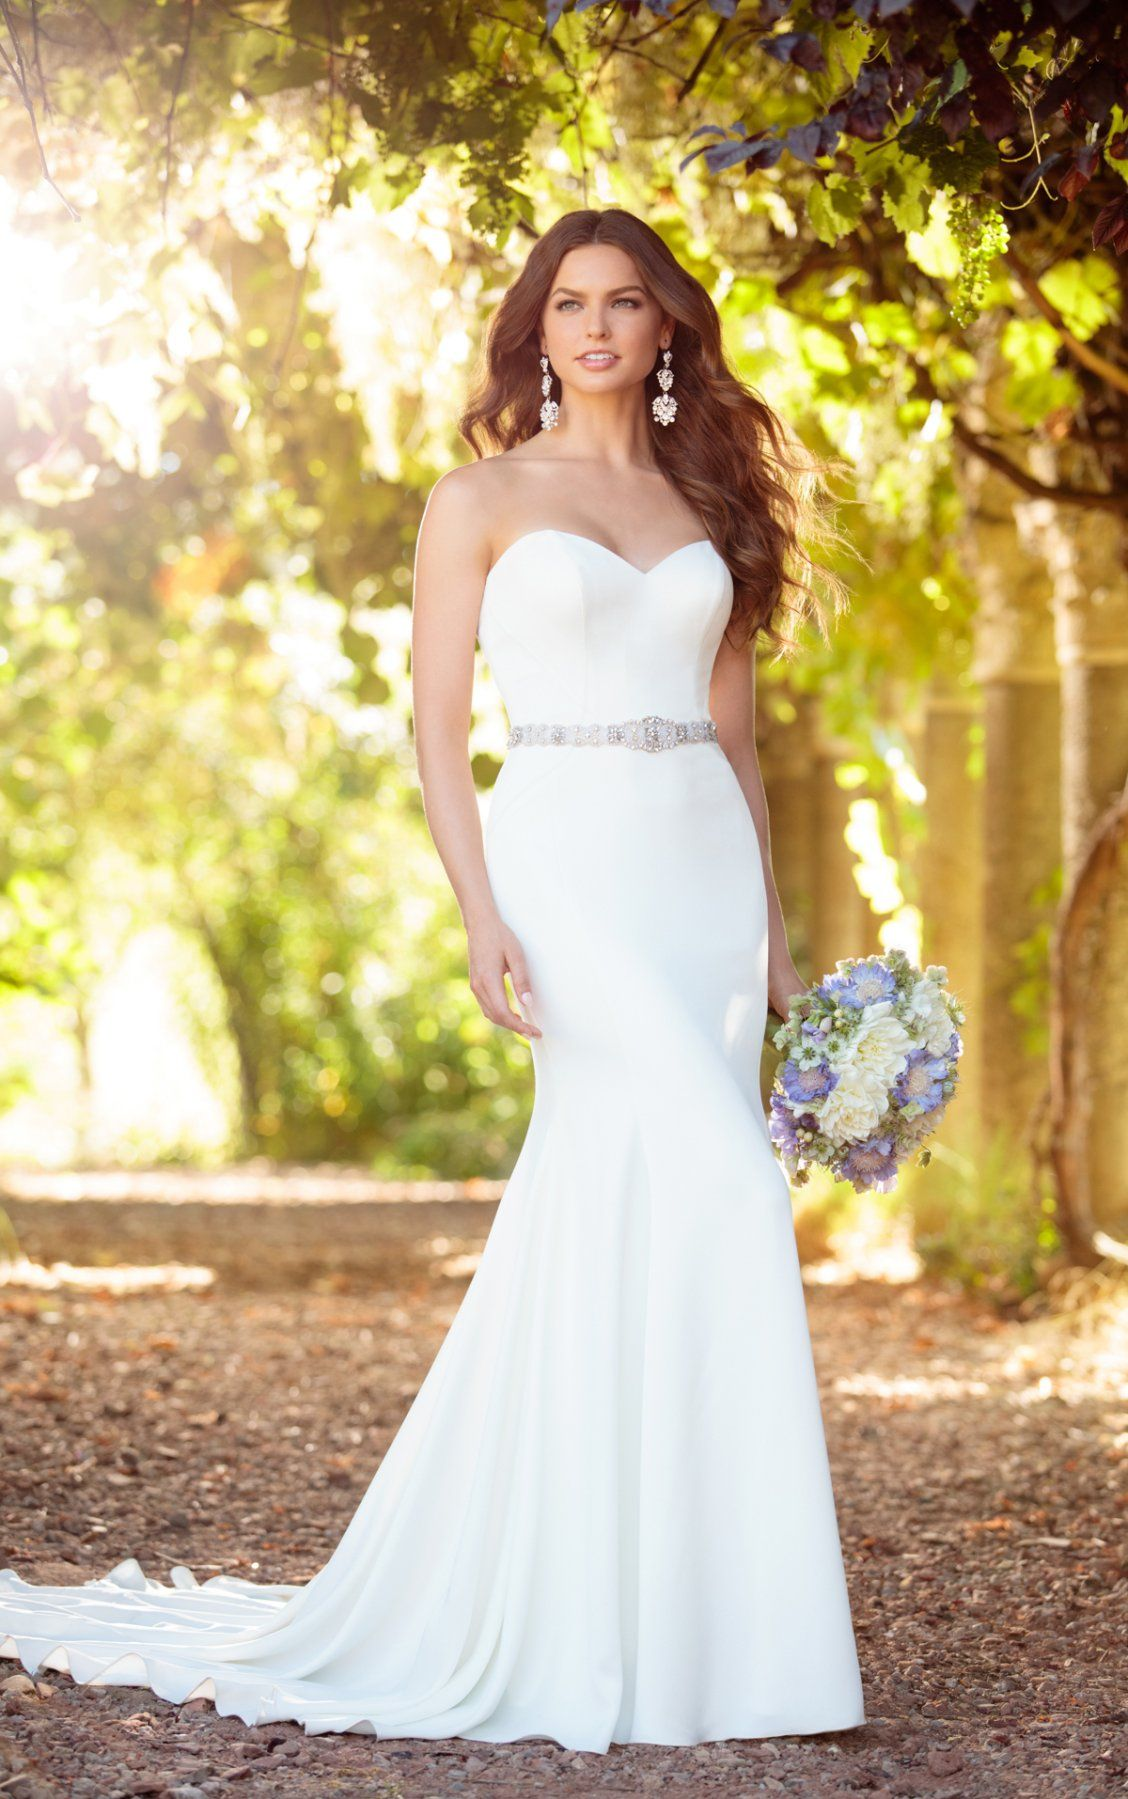 69393579adcb A truly elegant sheath wedding dress, this style from Essense of Australia  is as comfortable